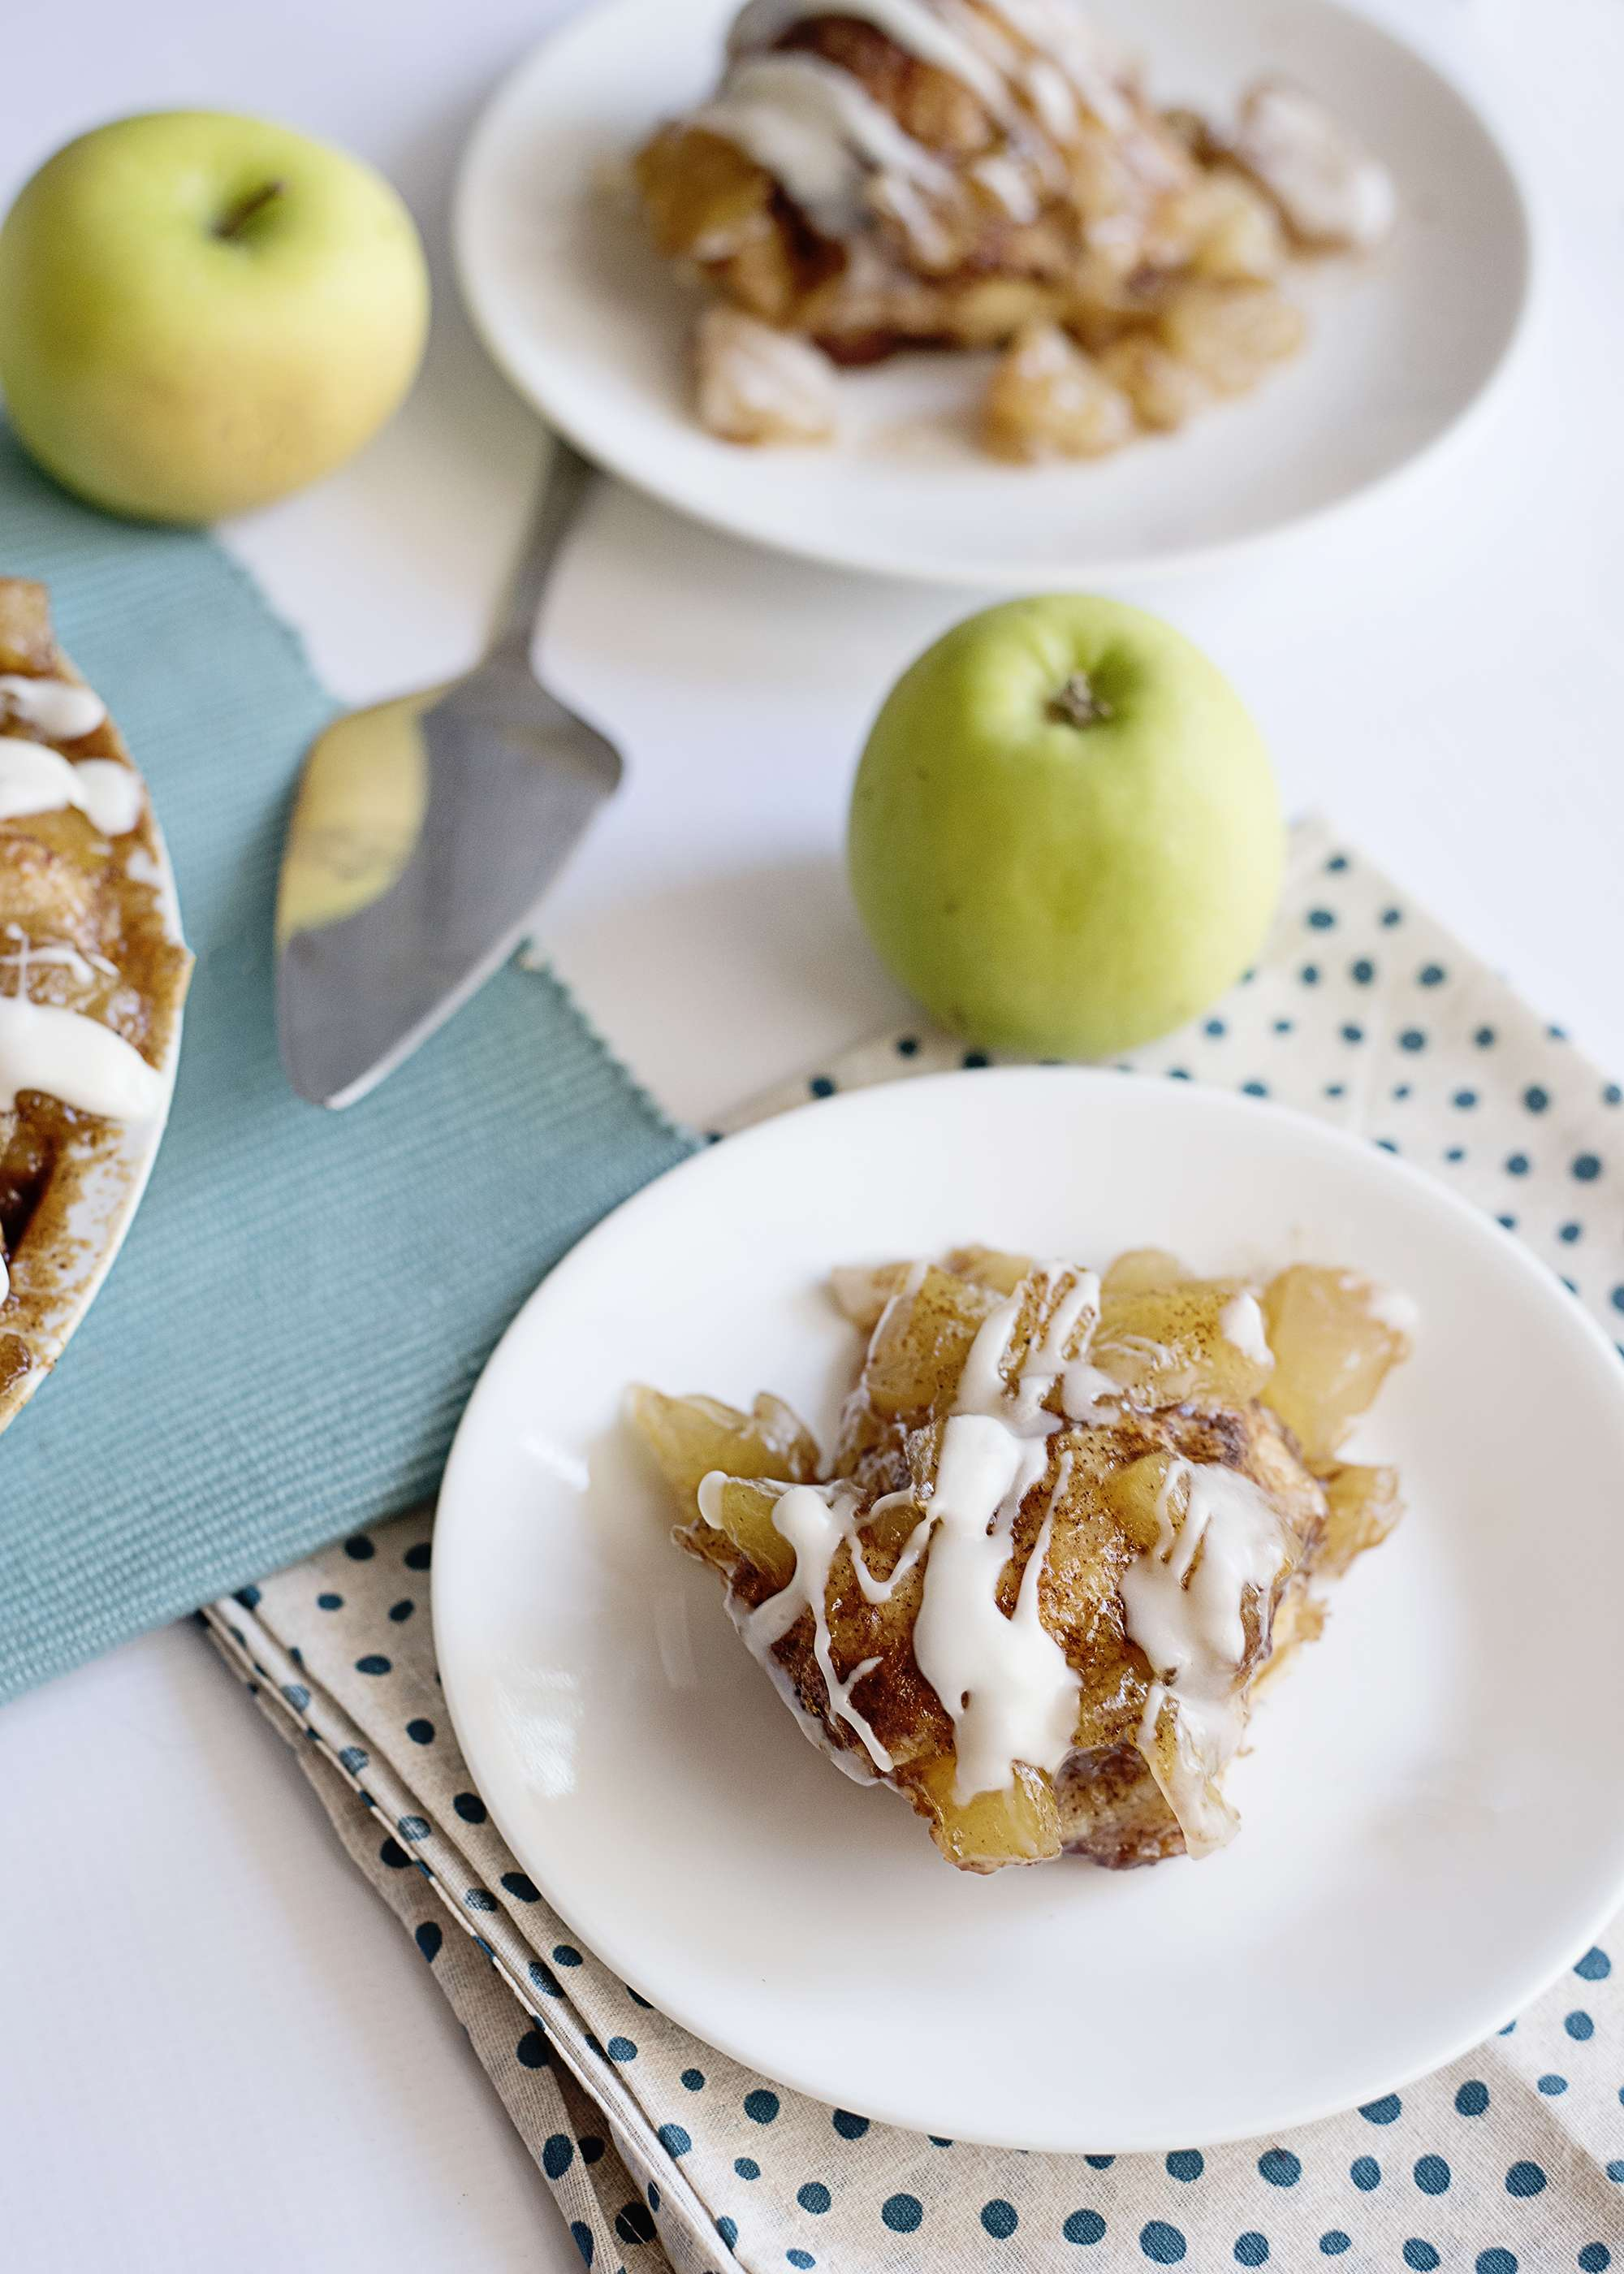 Apple Pie Biscuit Bake served on plates